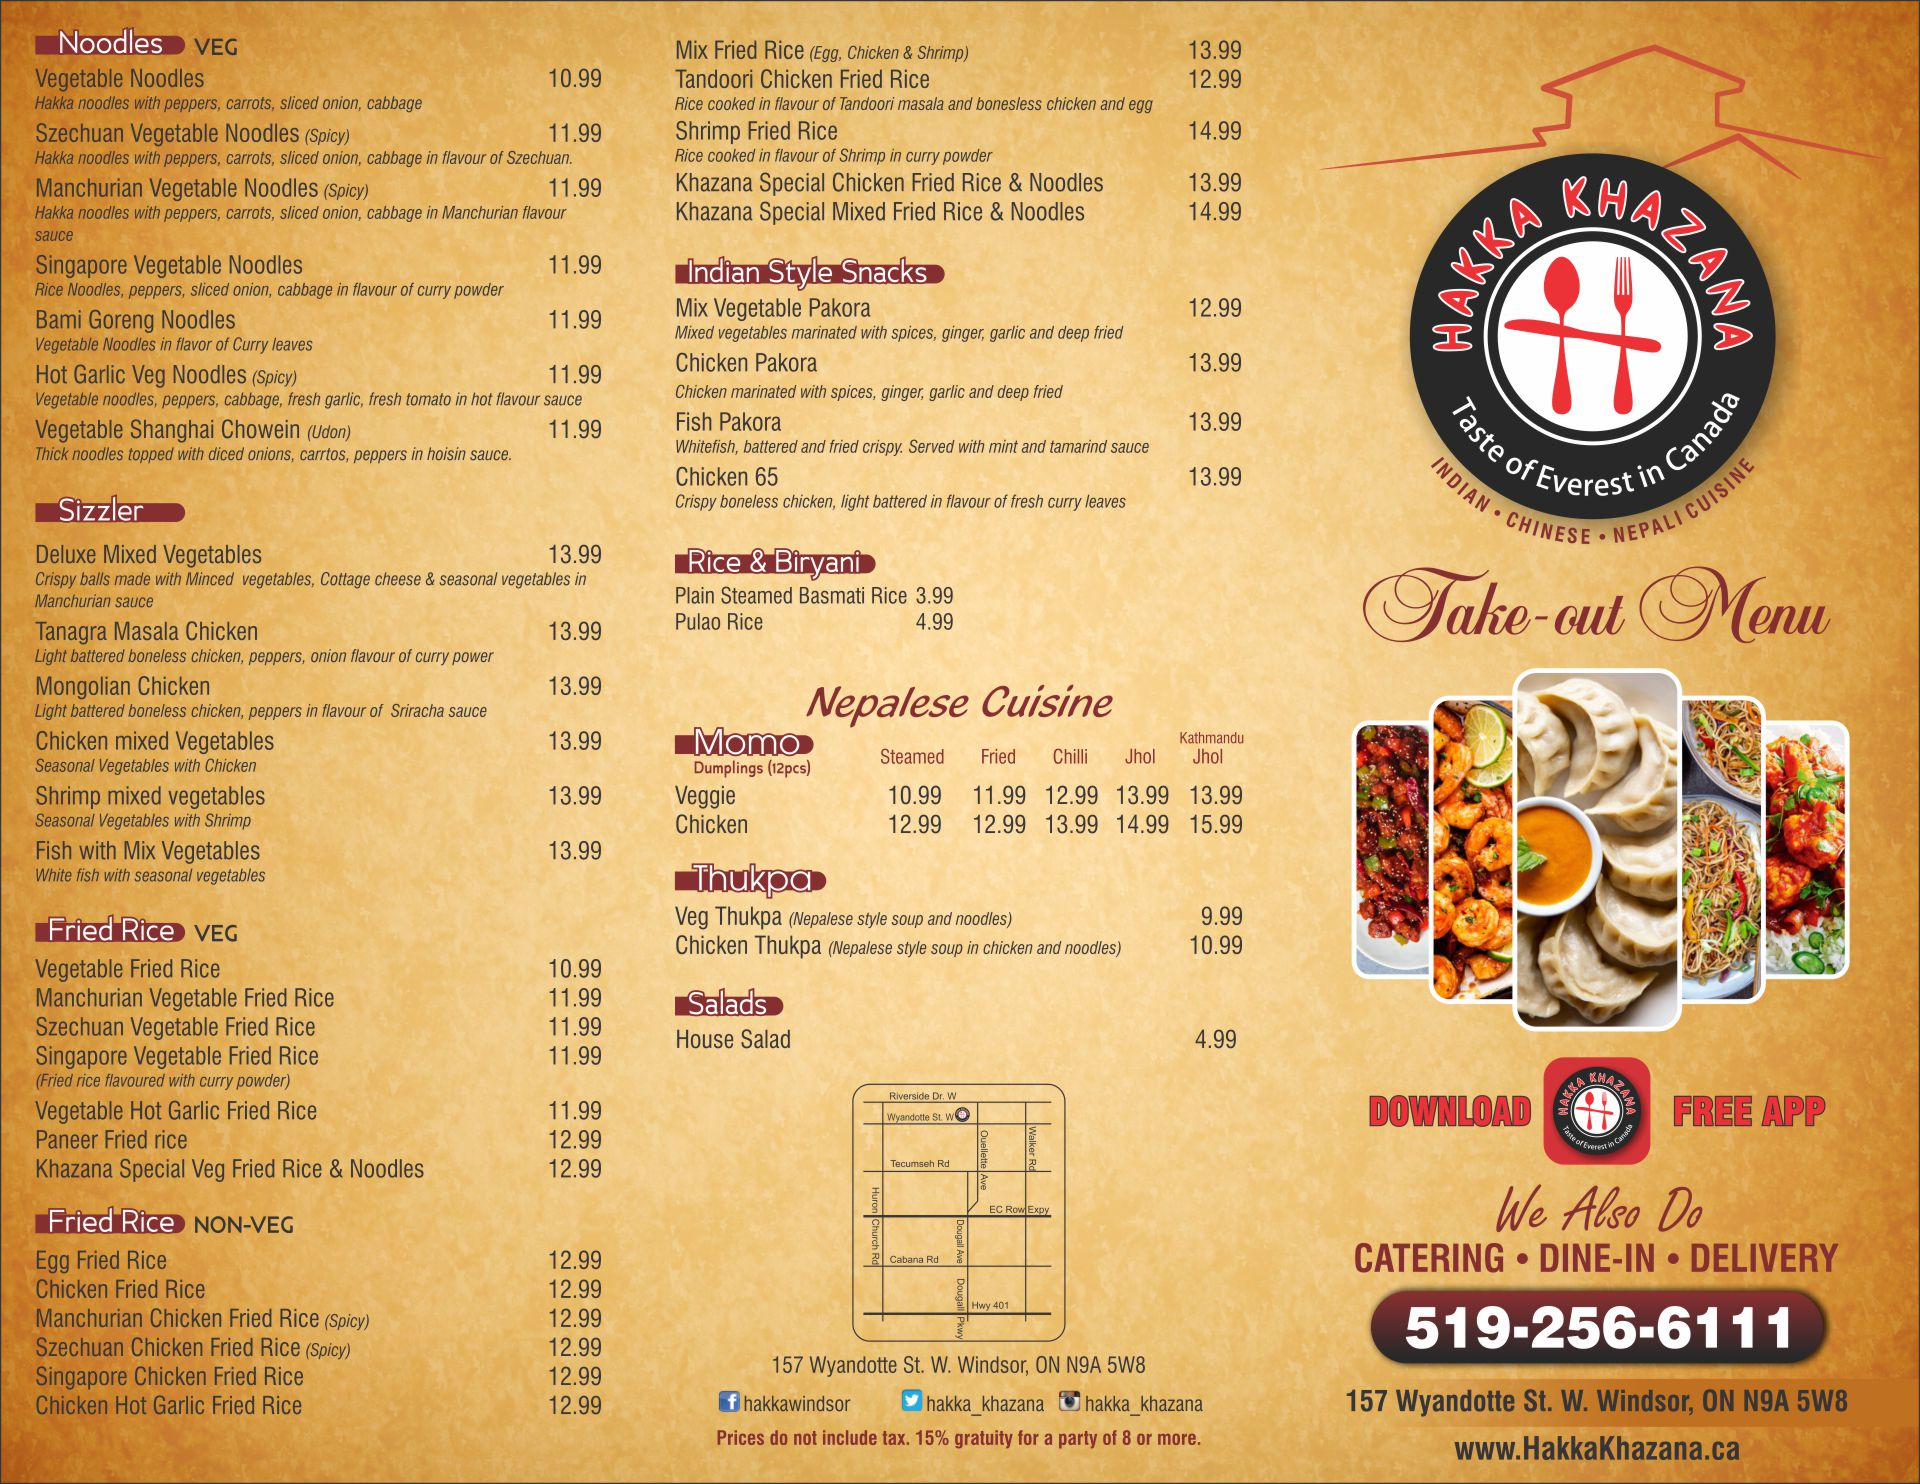 Windsor Hakka Khazana Menu 01